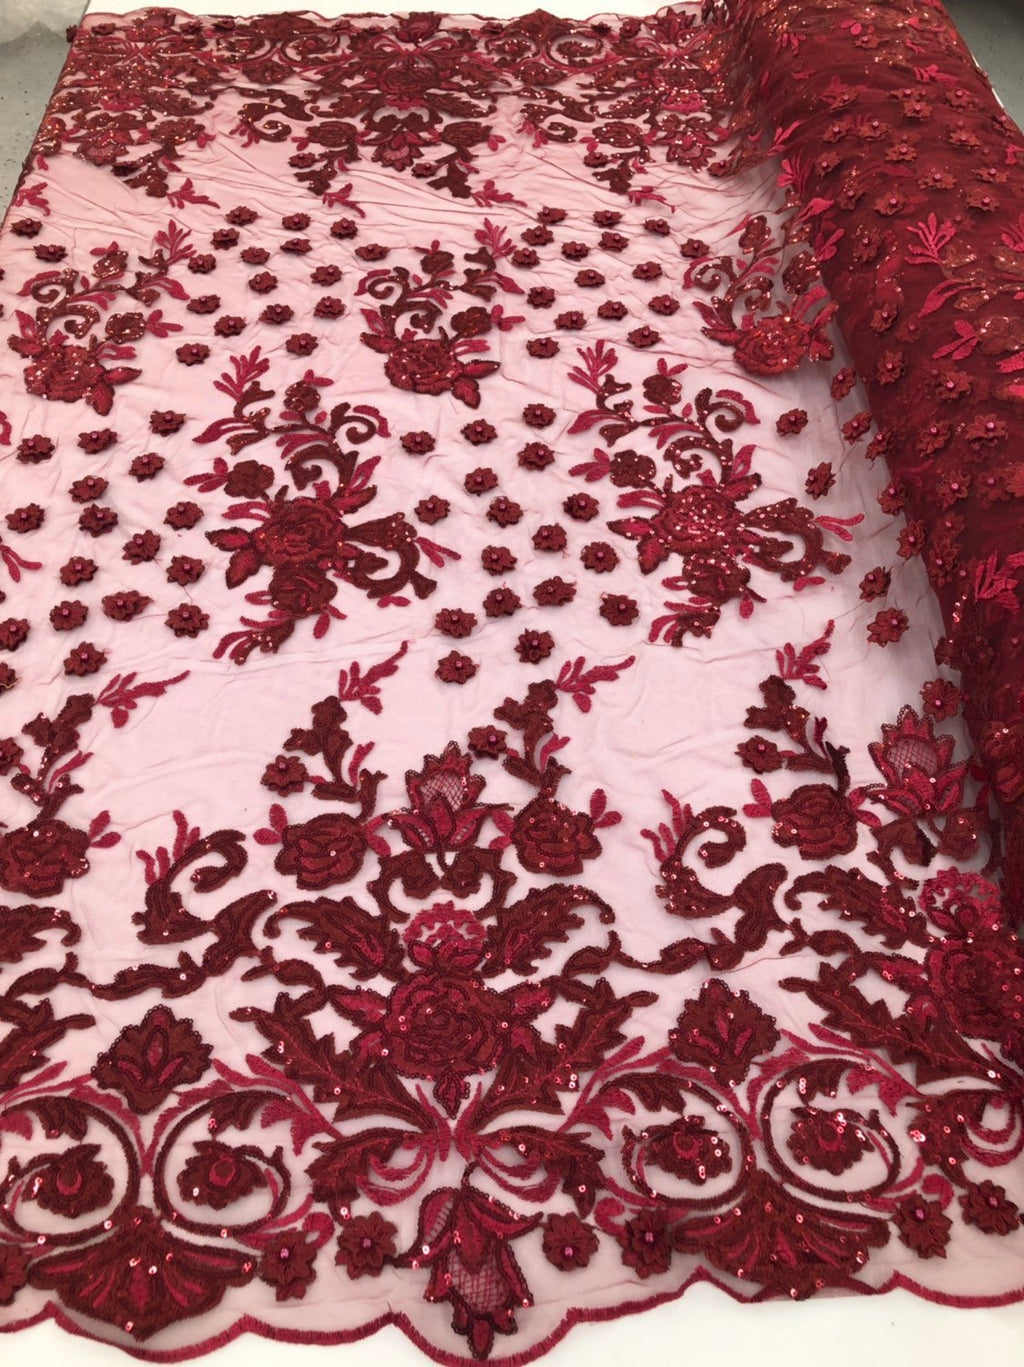 BURGUNDY Lace Fabric - Mini 3D Flower Embroidered On A Mesh Sequins And Beaded Fabric Floral Wedding Bridal Veil Prom-Gown By The Yard - KINGDOM OF FABRICS